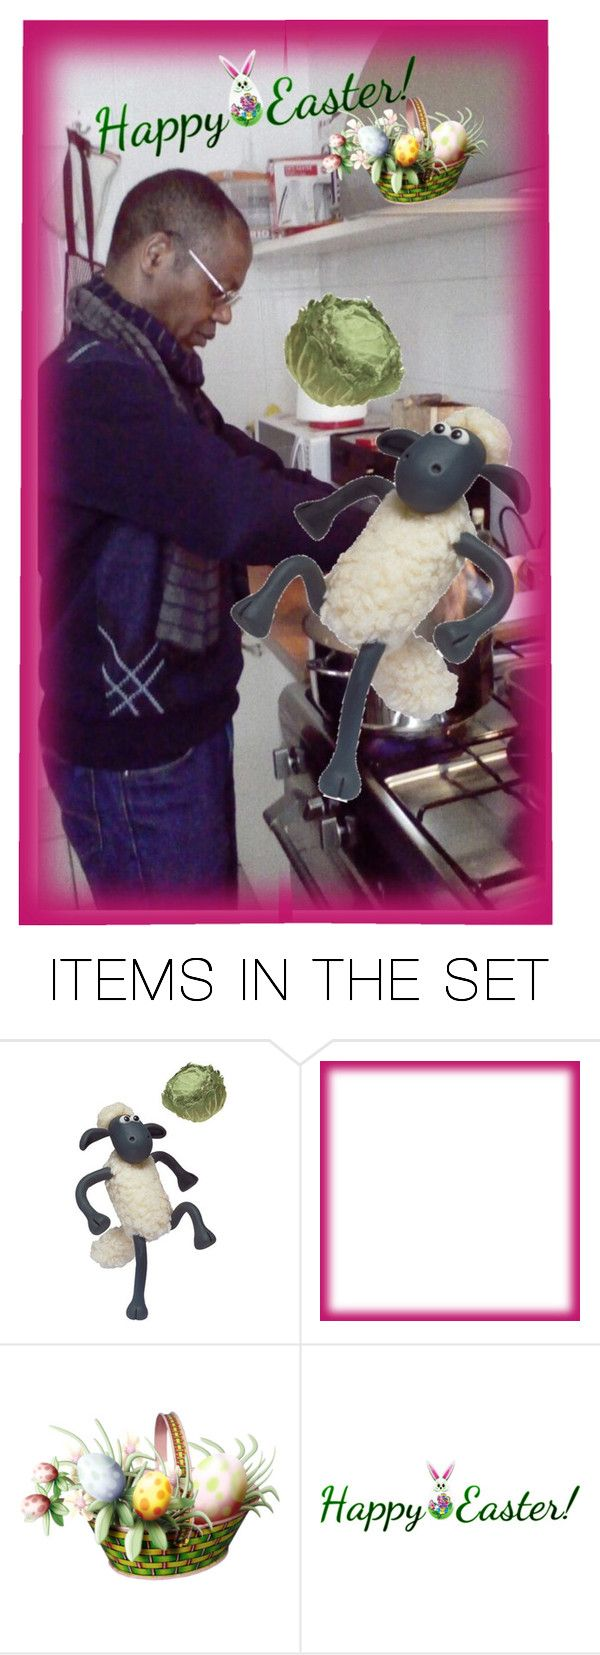 """""""My friend"""" by flioncleo62 ❤ liked on Polyvore featuring art"""